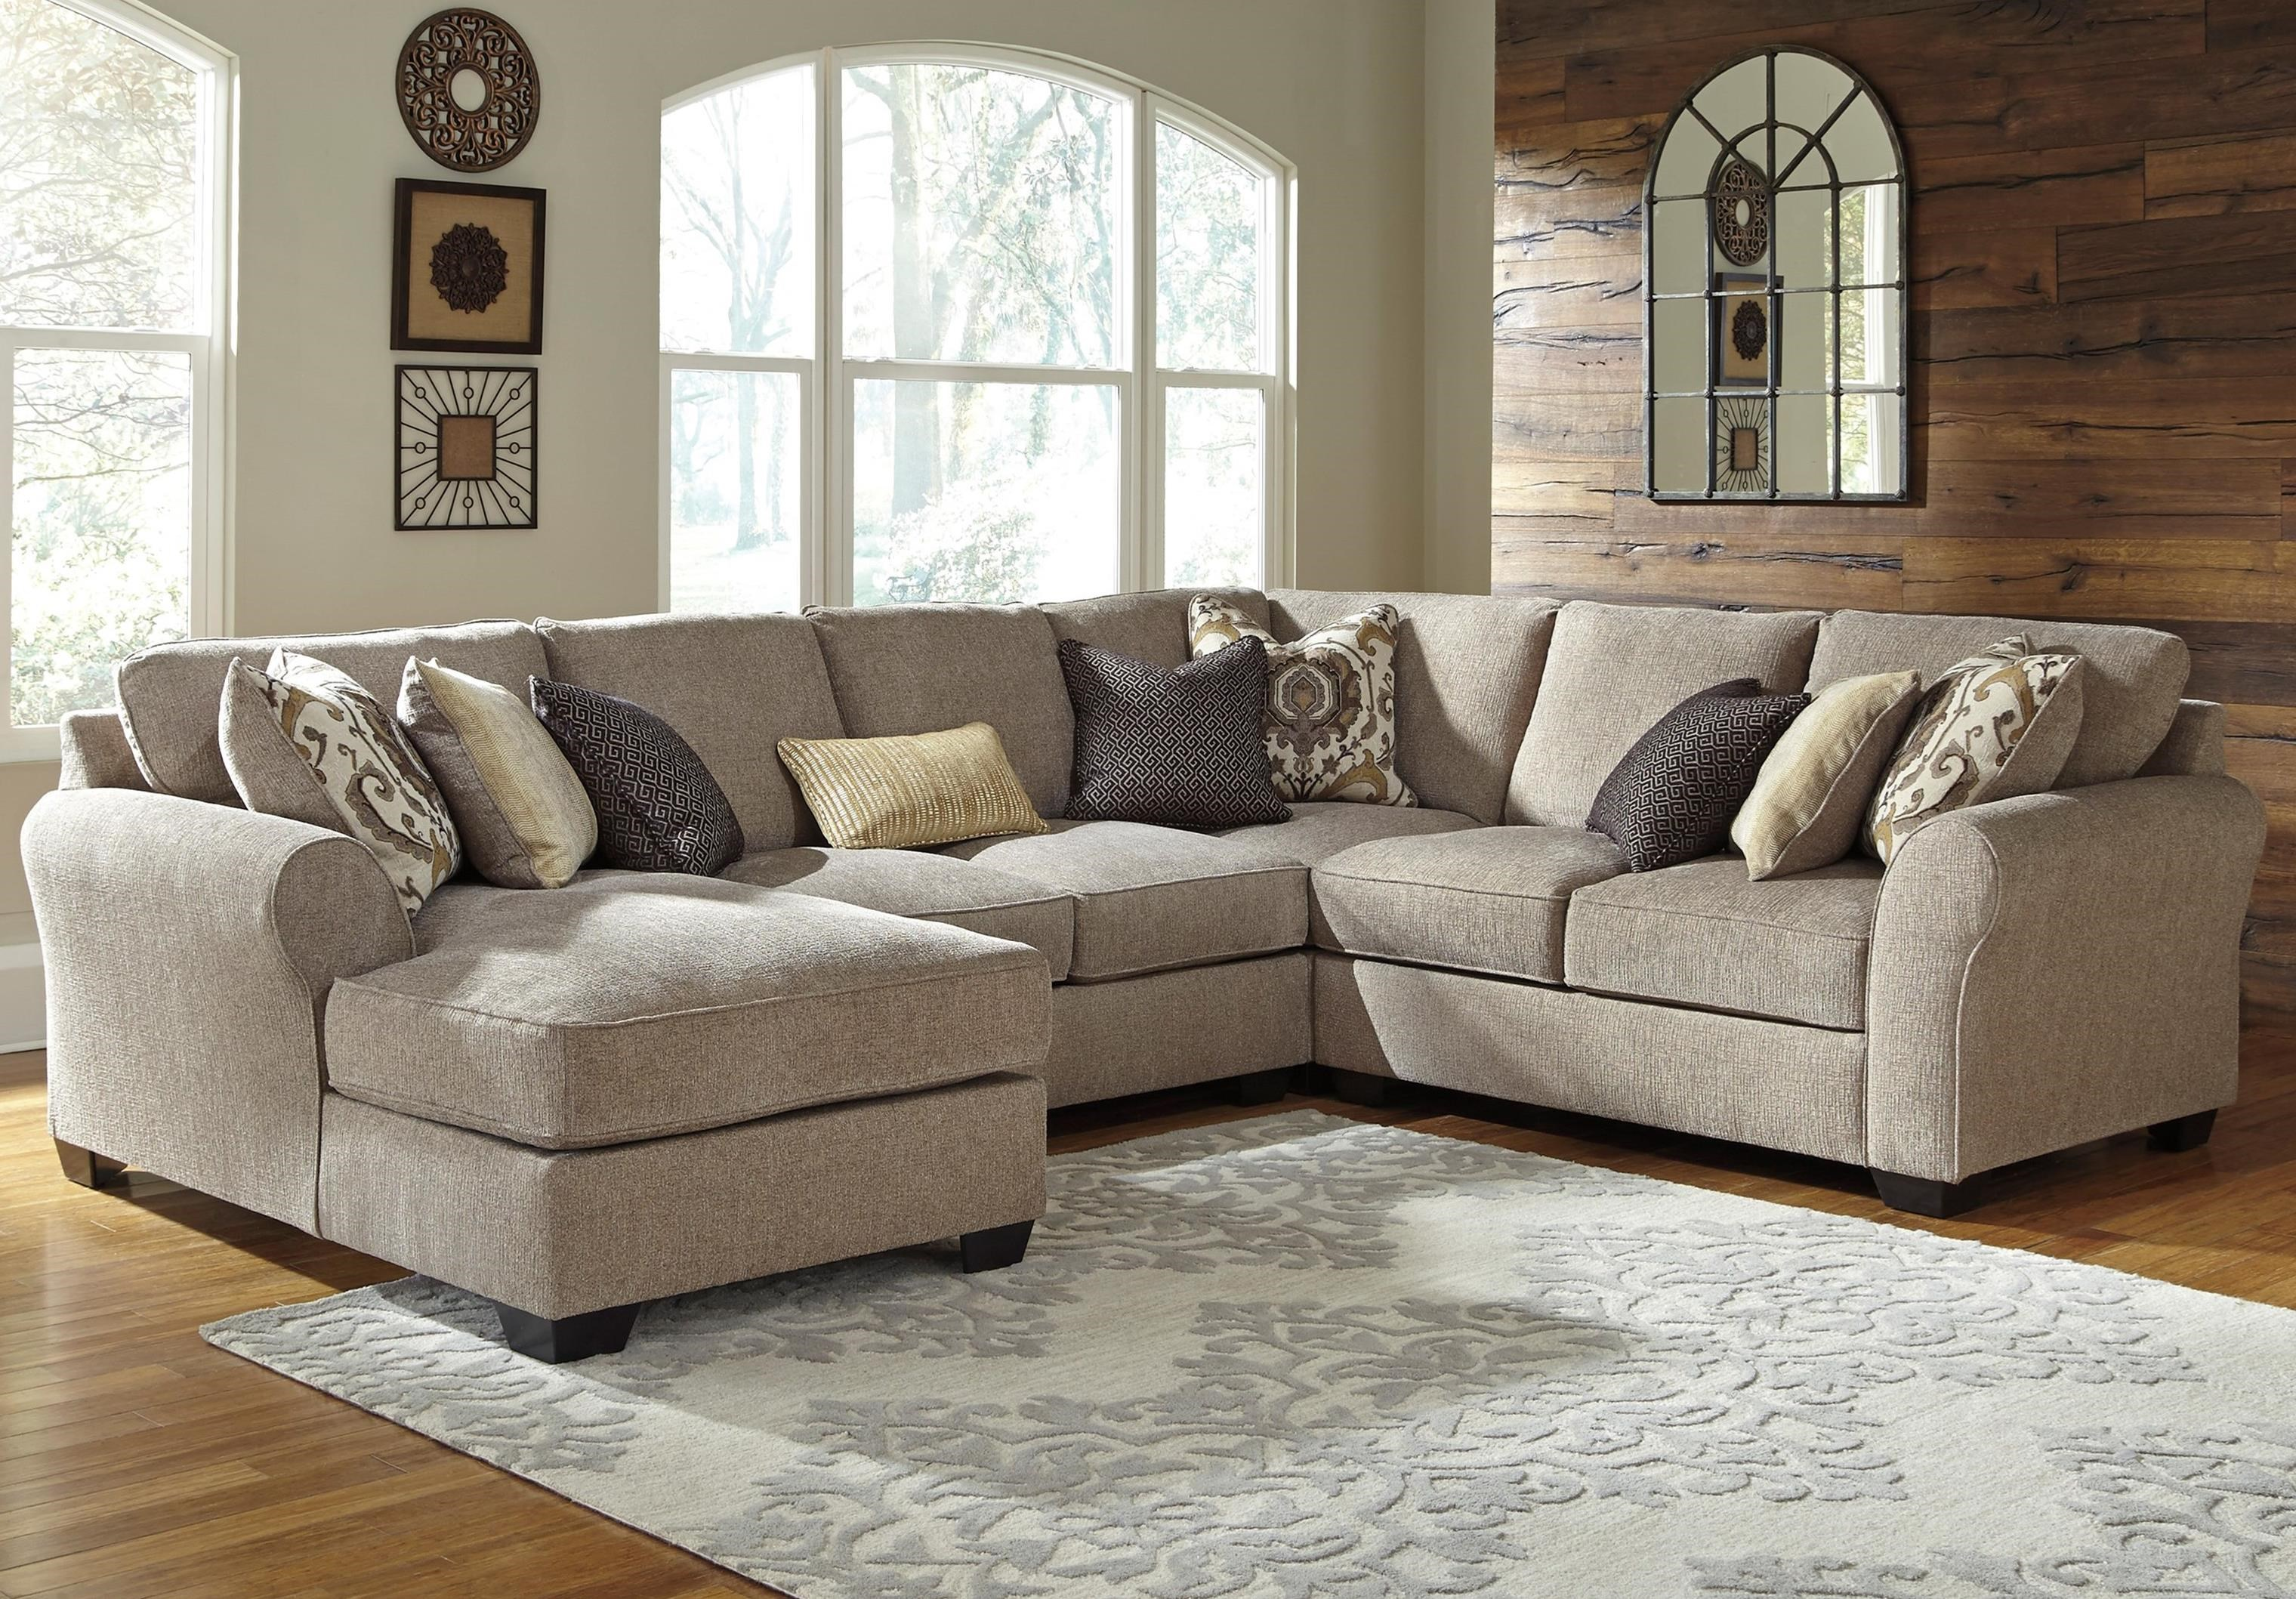 Pantomine 4-Piece Sectional with Left Chaise by Benchcraft at Lapeer Furniture & Mattress Center